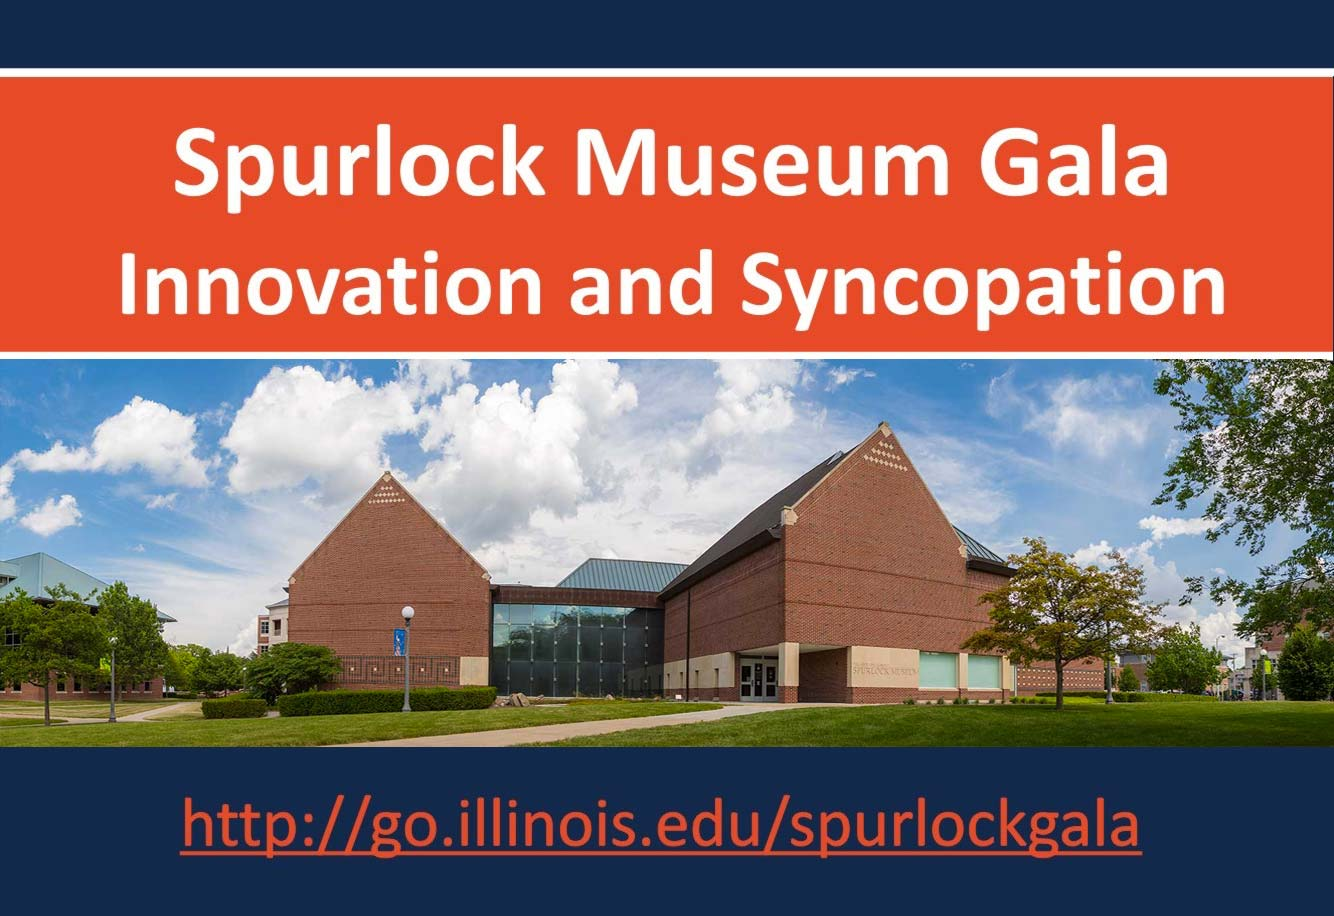 Spurlock Museum Gala Innovation and Syncopation title image